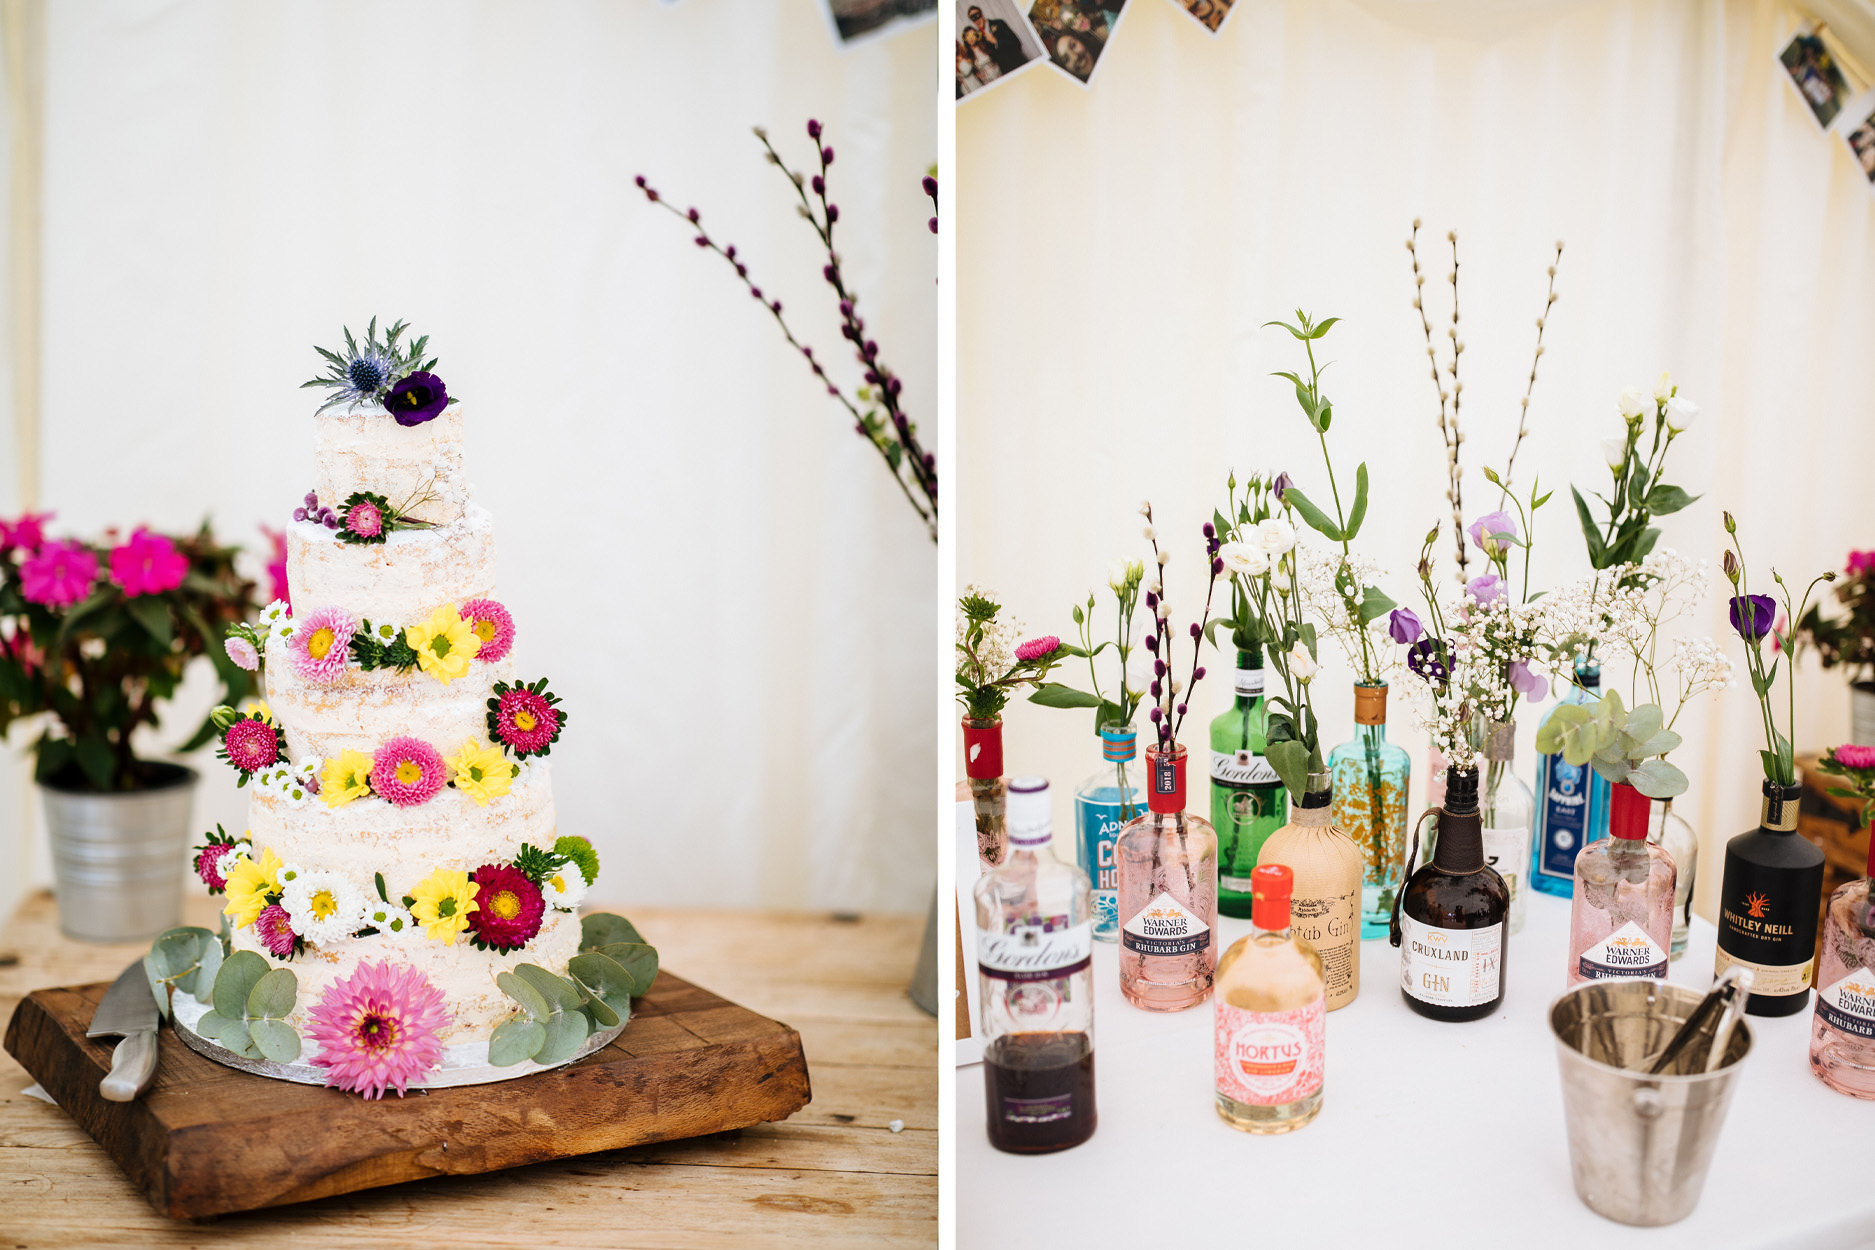 wedding decor white cake with bright flowers and assorted gin bottles